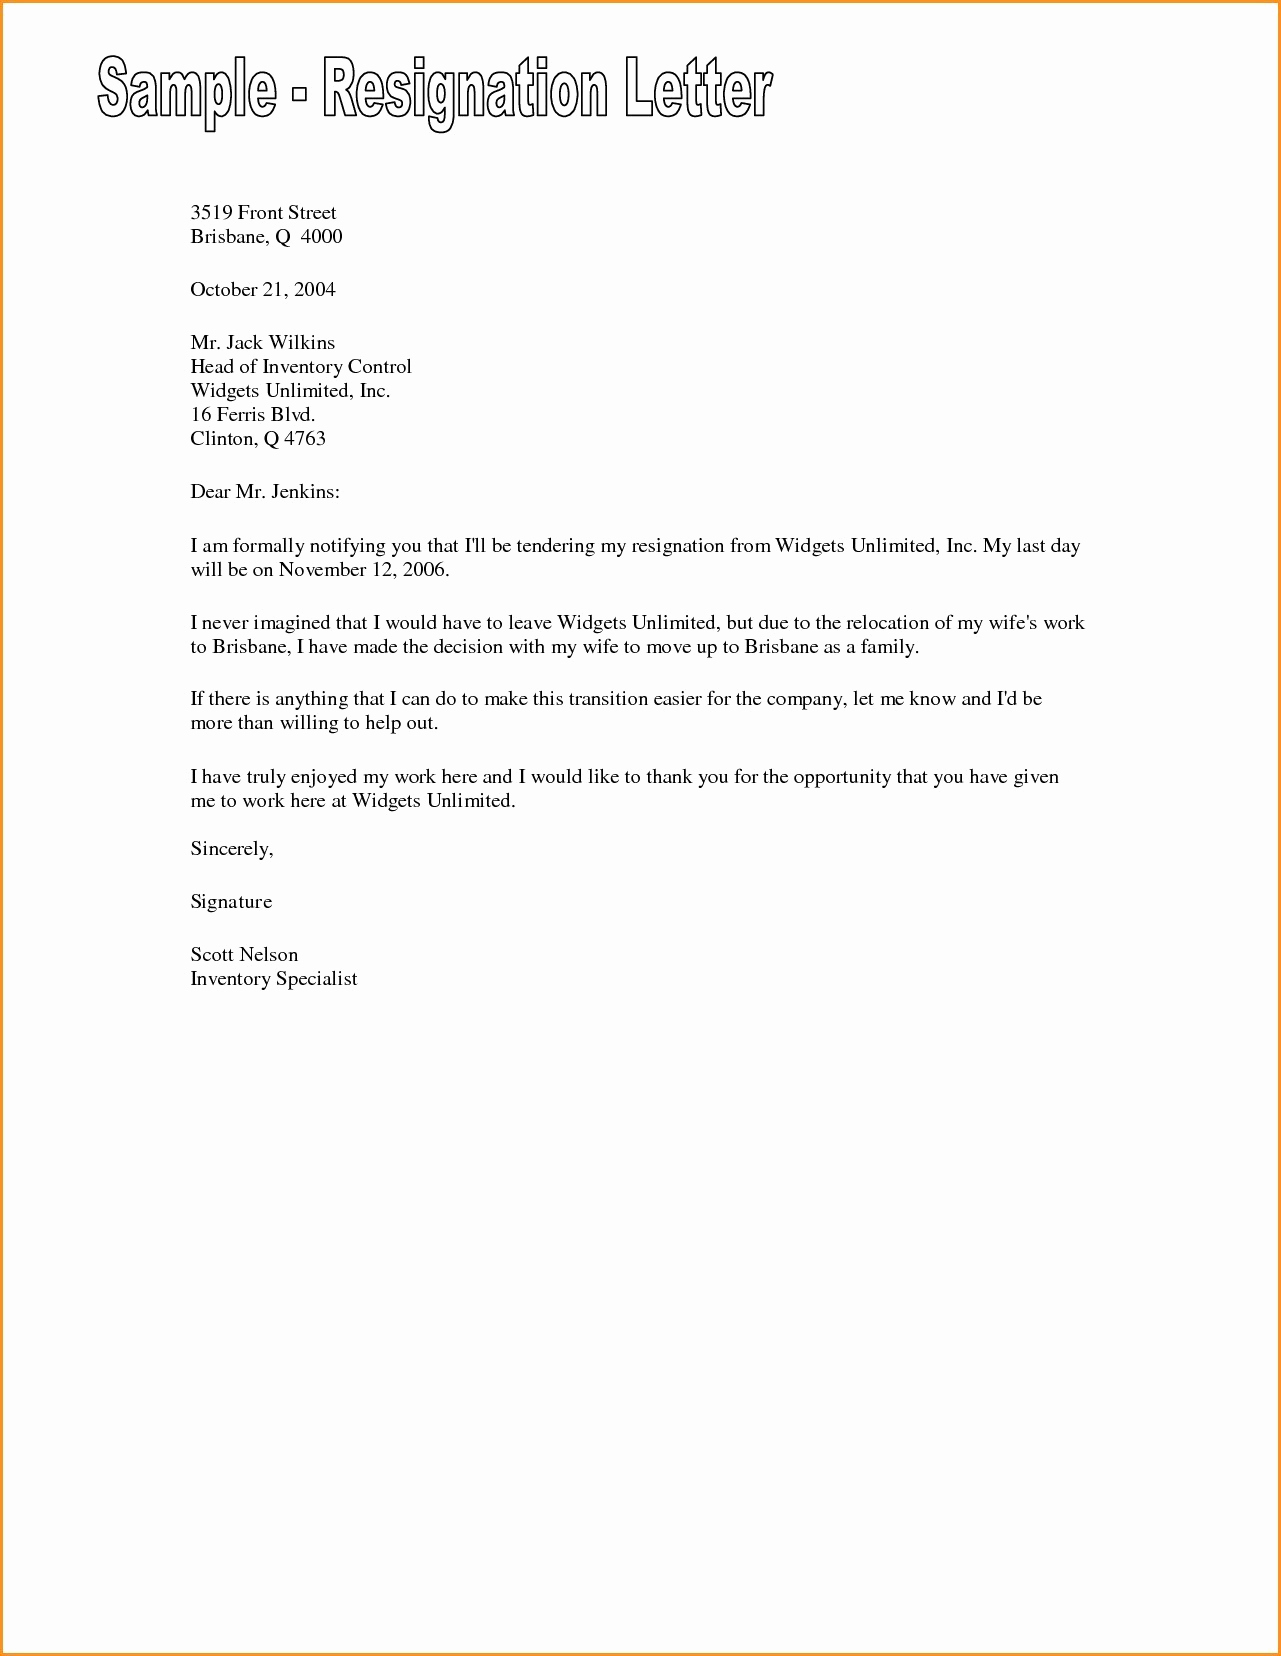 Employment Confirmation Letter Template Doc - Resignation Letter Samples Word Best Employment Fer Letter